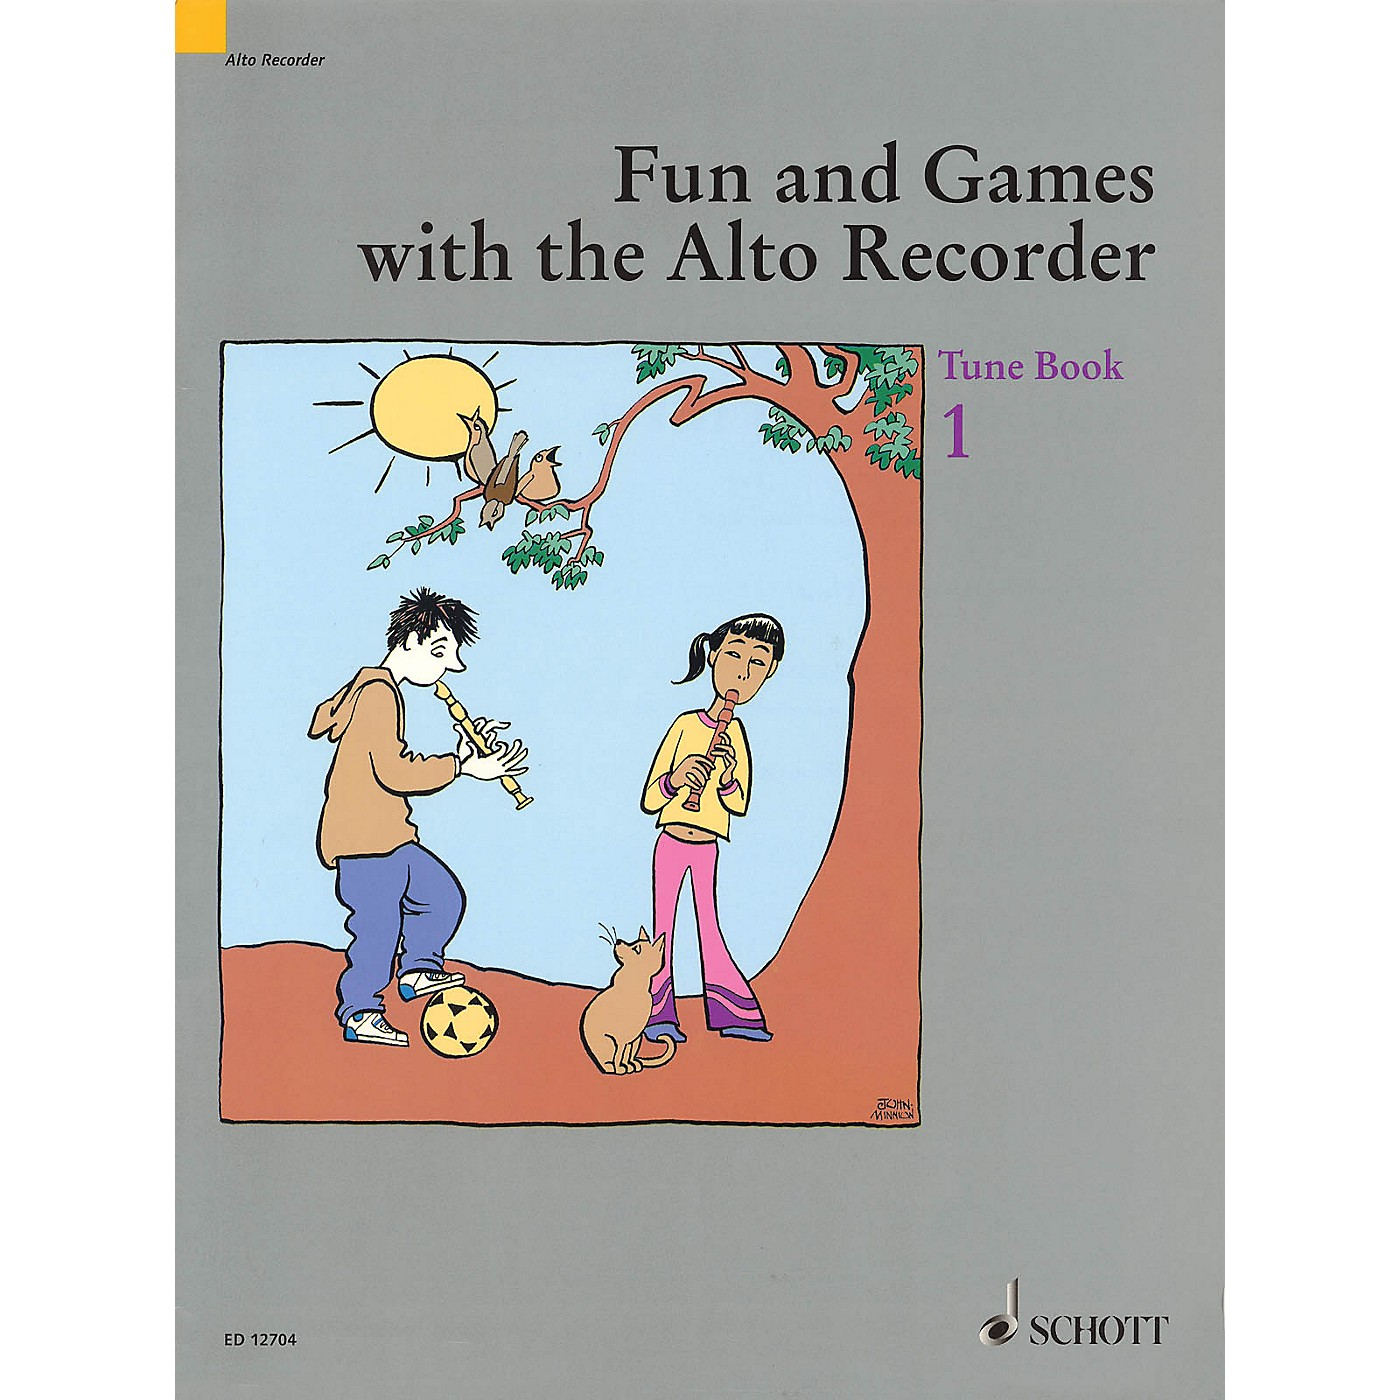 Schott Fun and Games with the Alto Recorder (Tune Book 1) Schott Series thumbnail